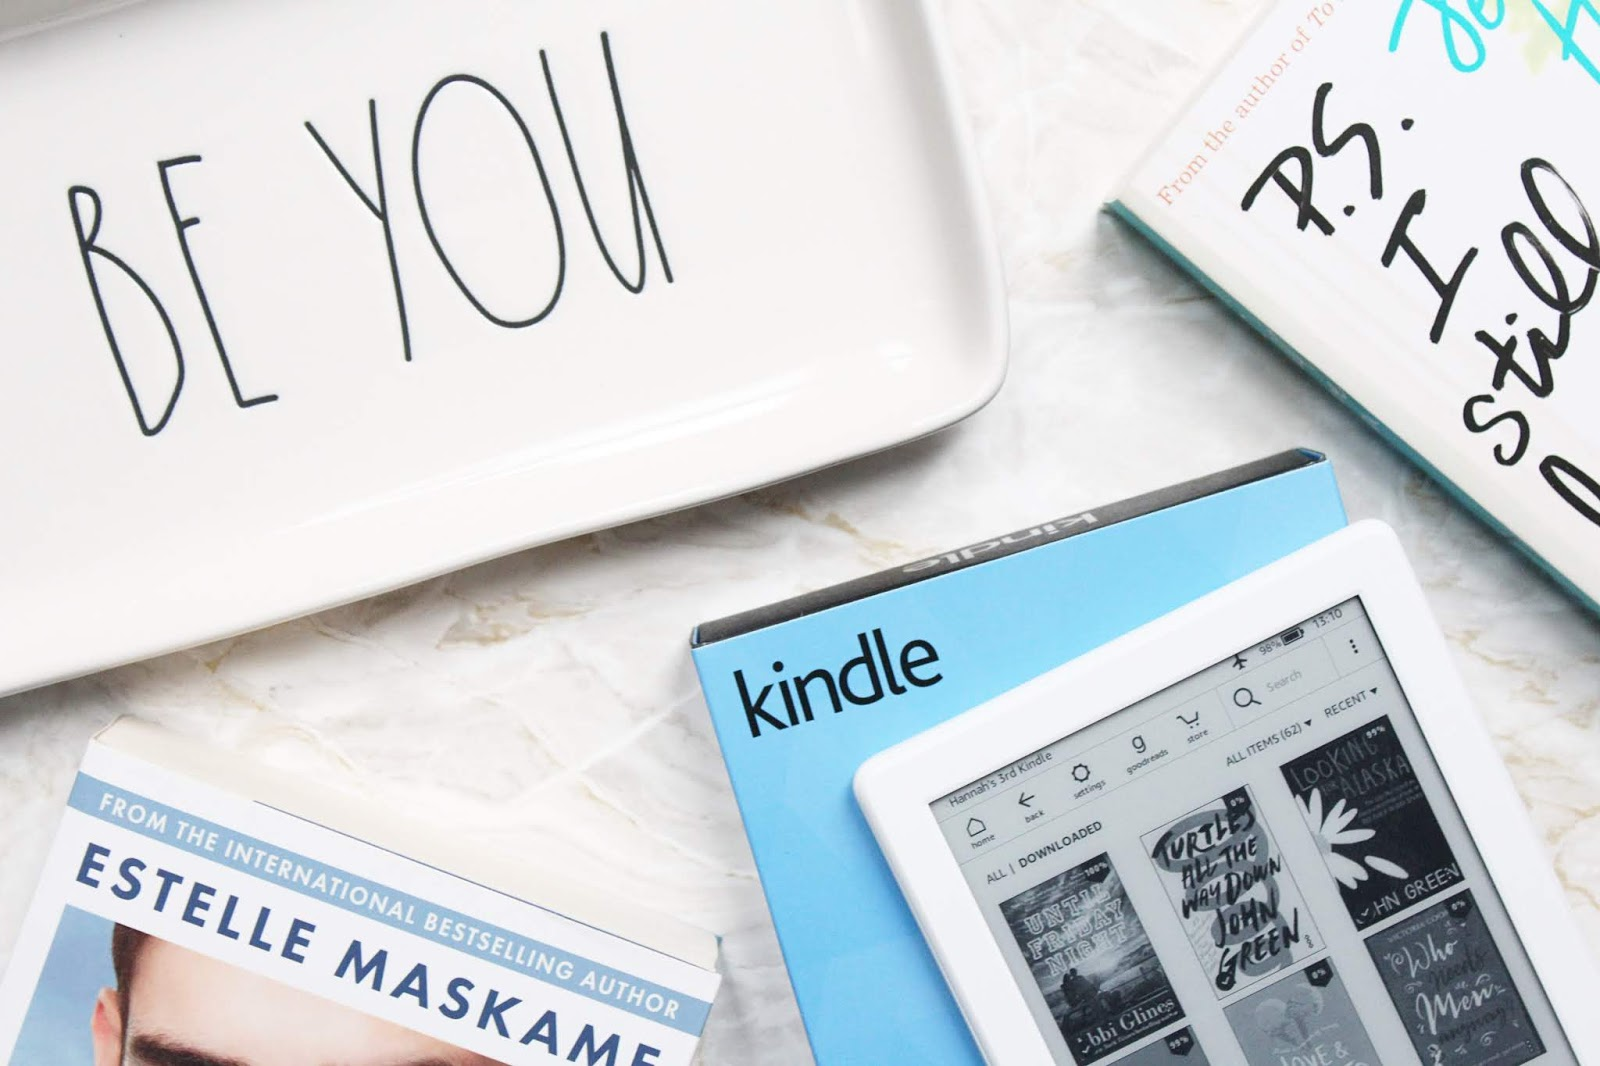 Kindle E-Reader Review